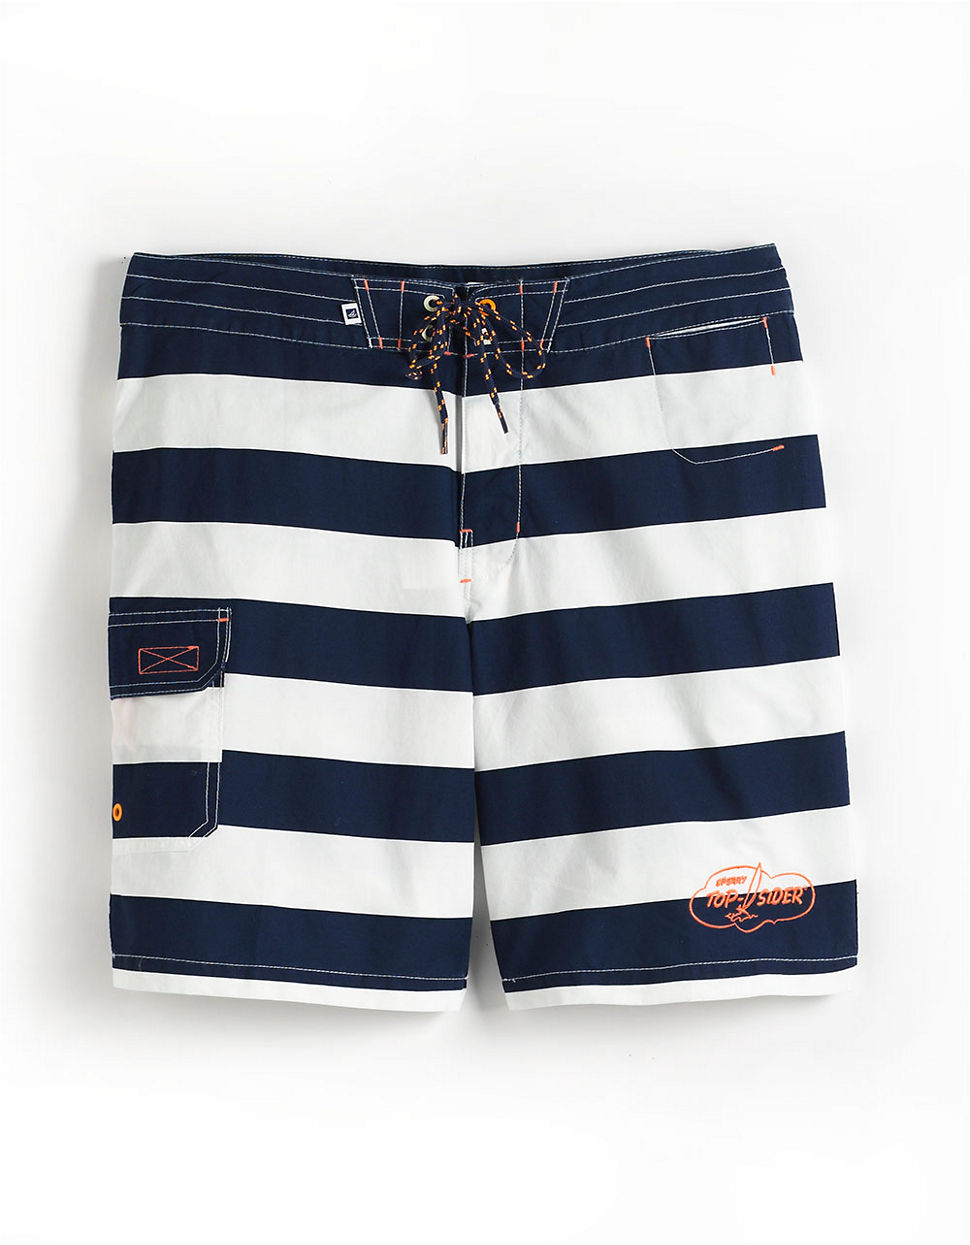 Find mens striped boardshorts at ShopStyle. Shop the latest collection of mens striped boardshorts from the most popular stores - all in one place.